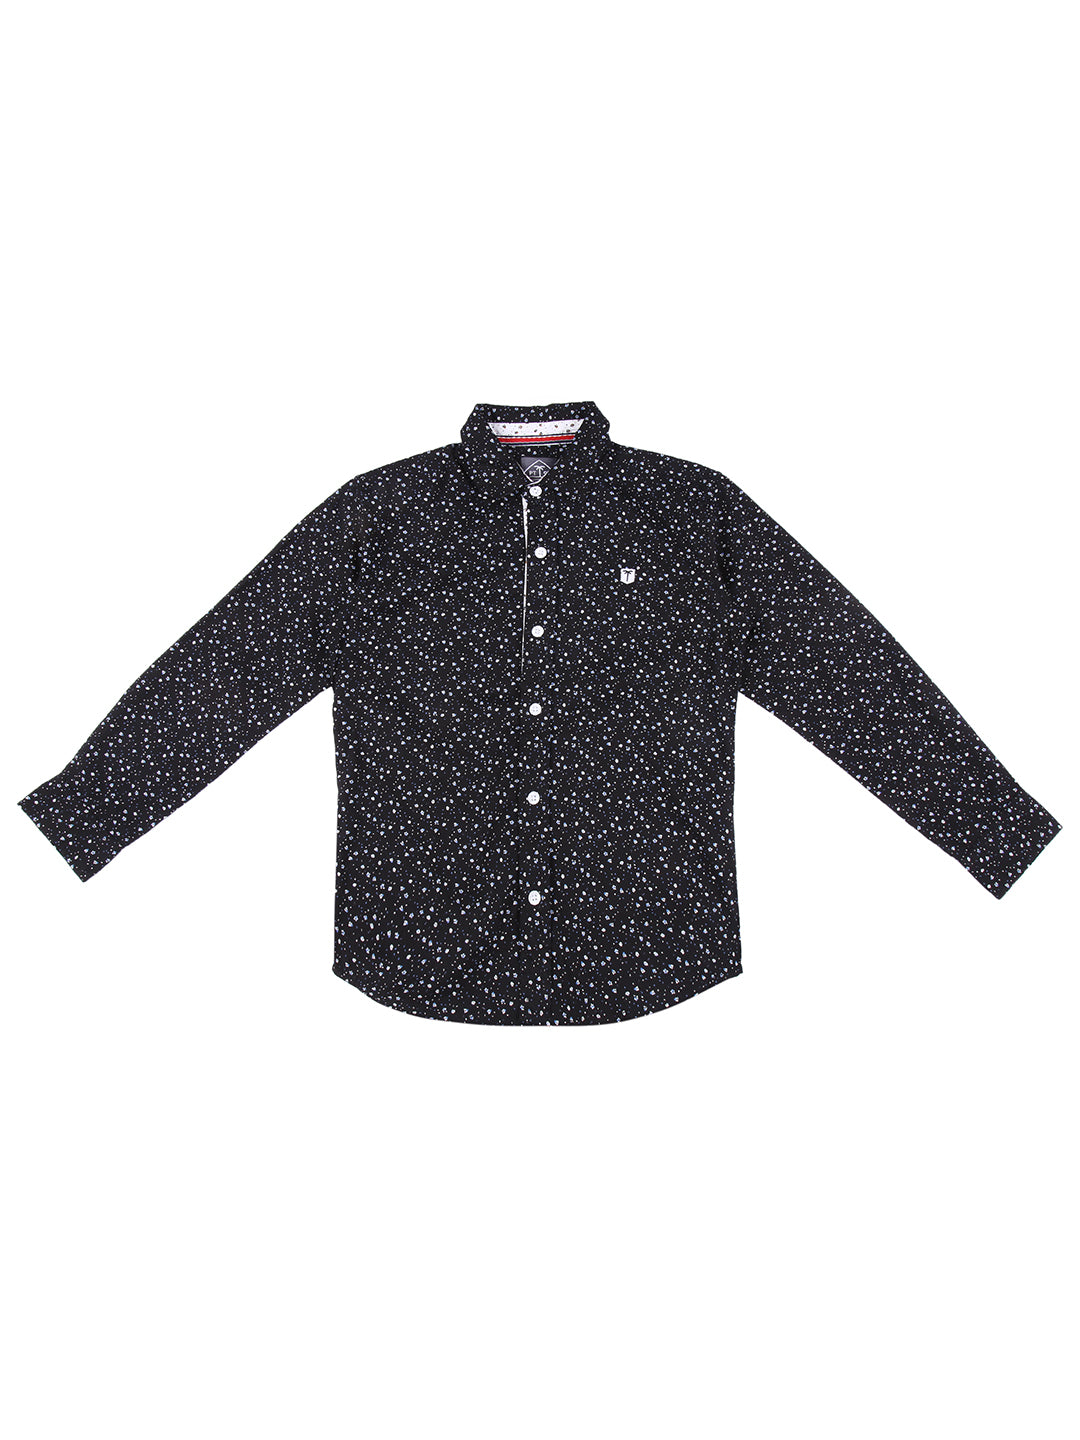 Caviar Black Shirt